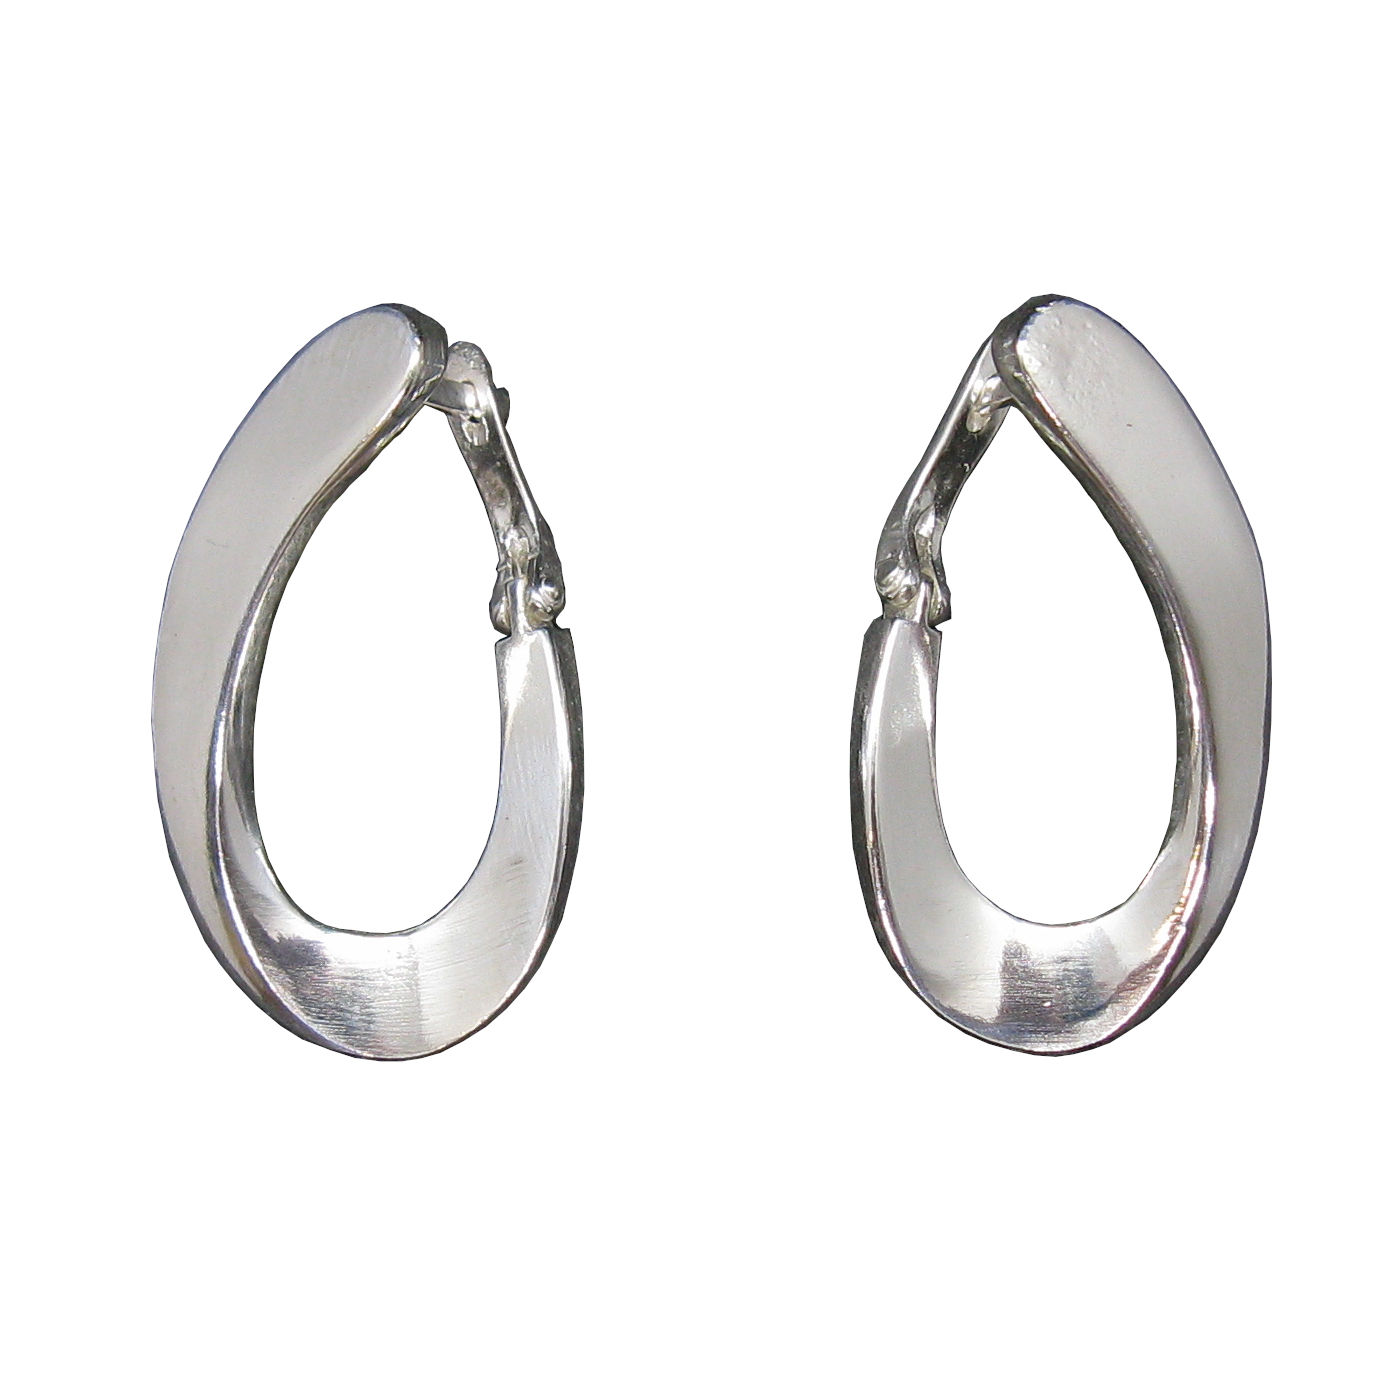 Silver earrings - E000770